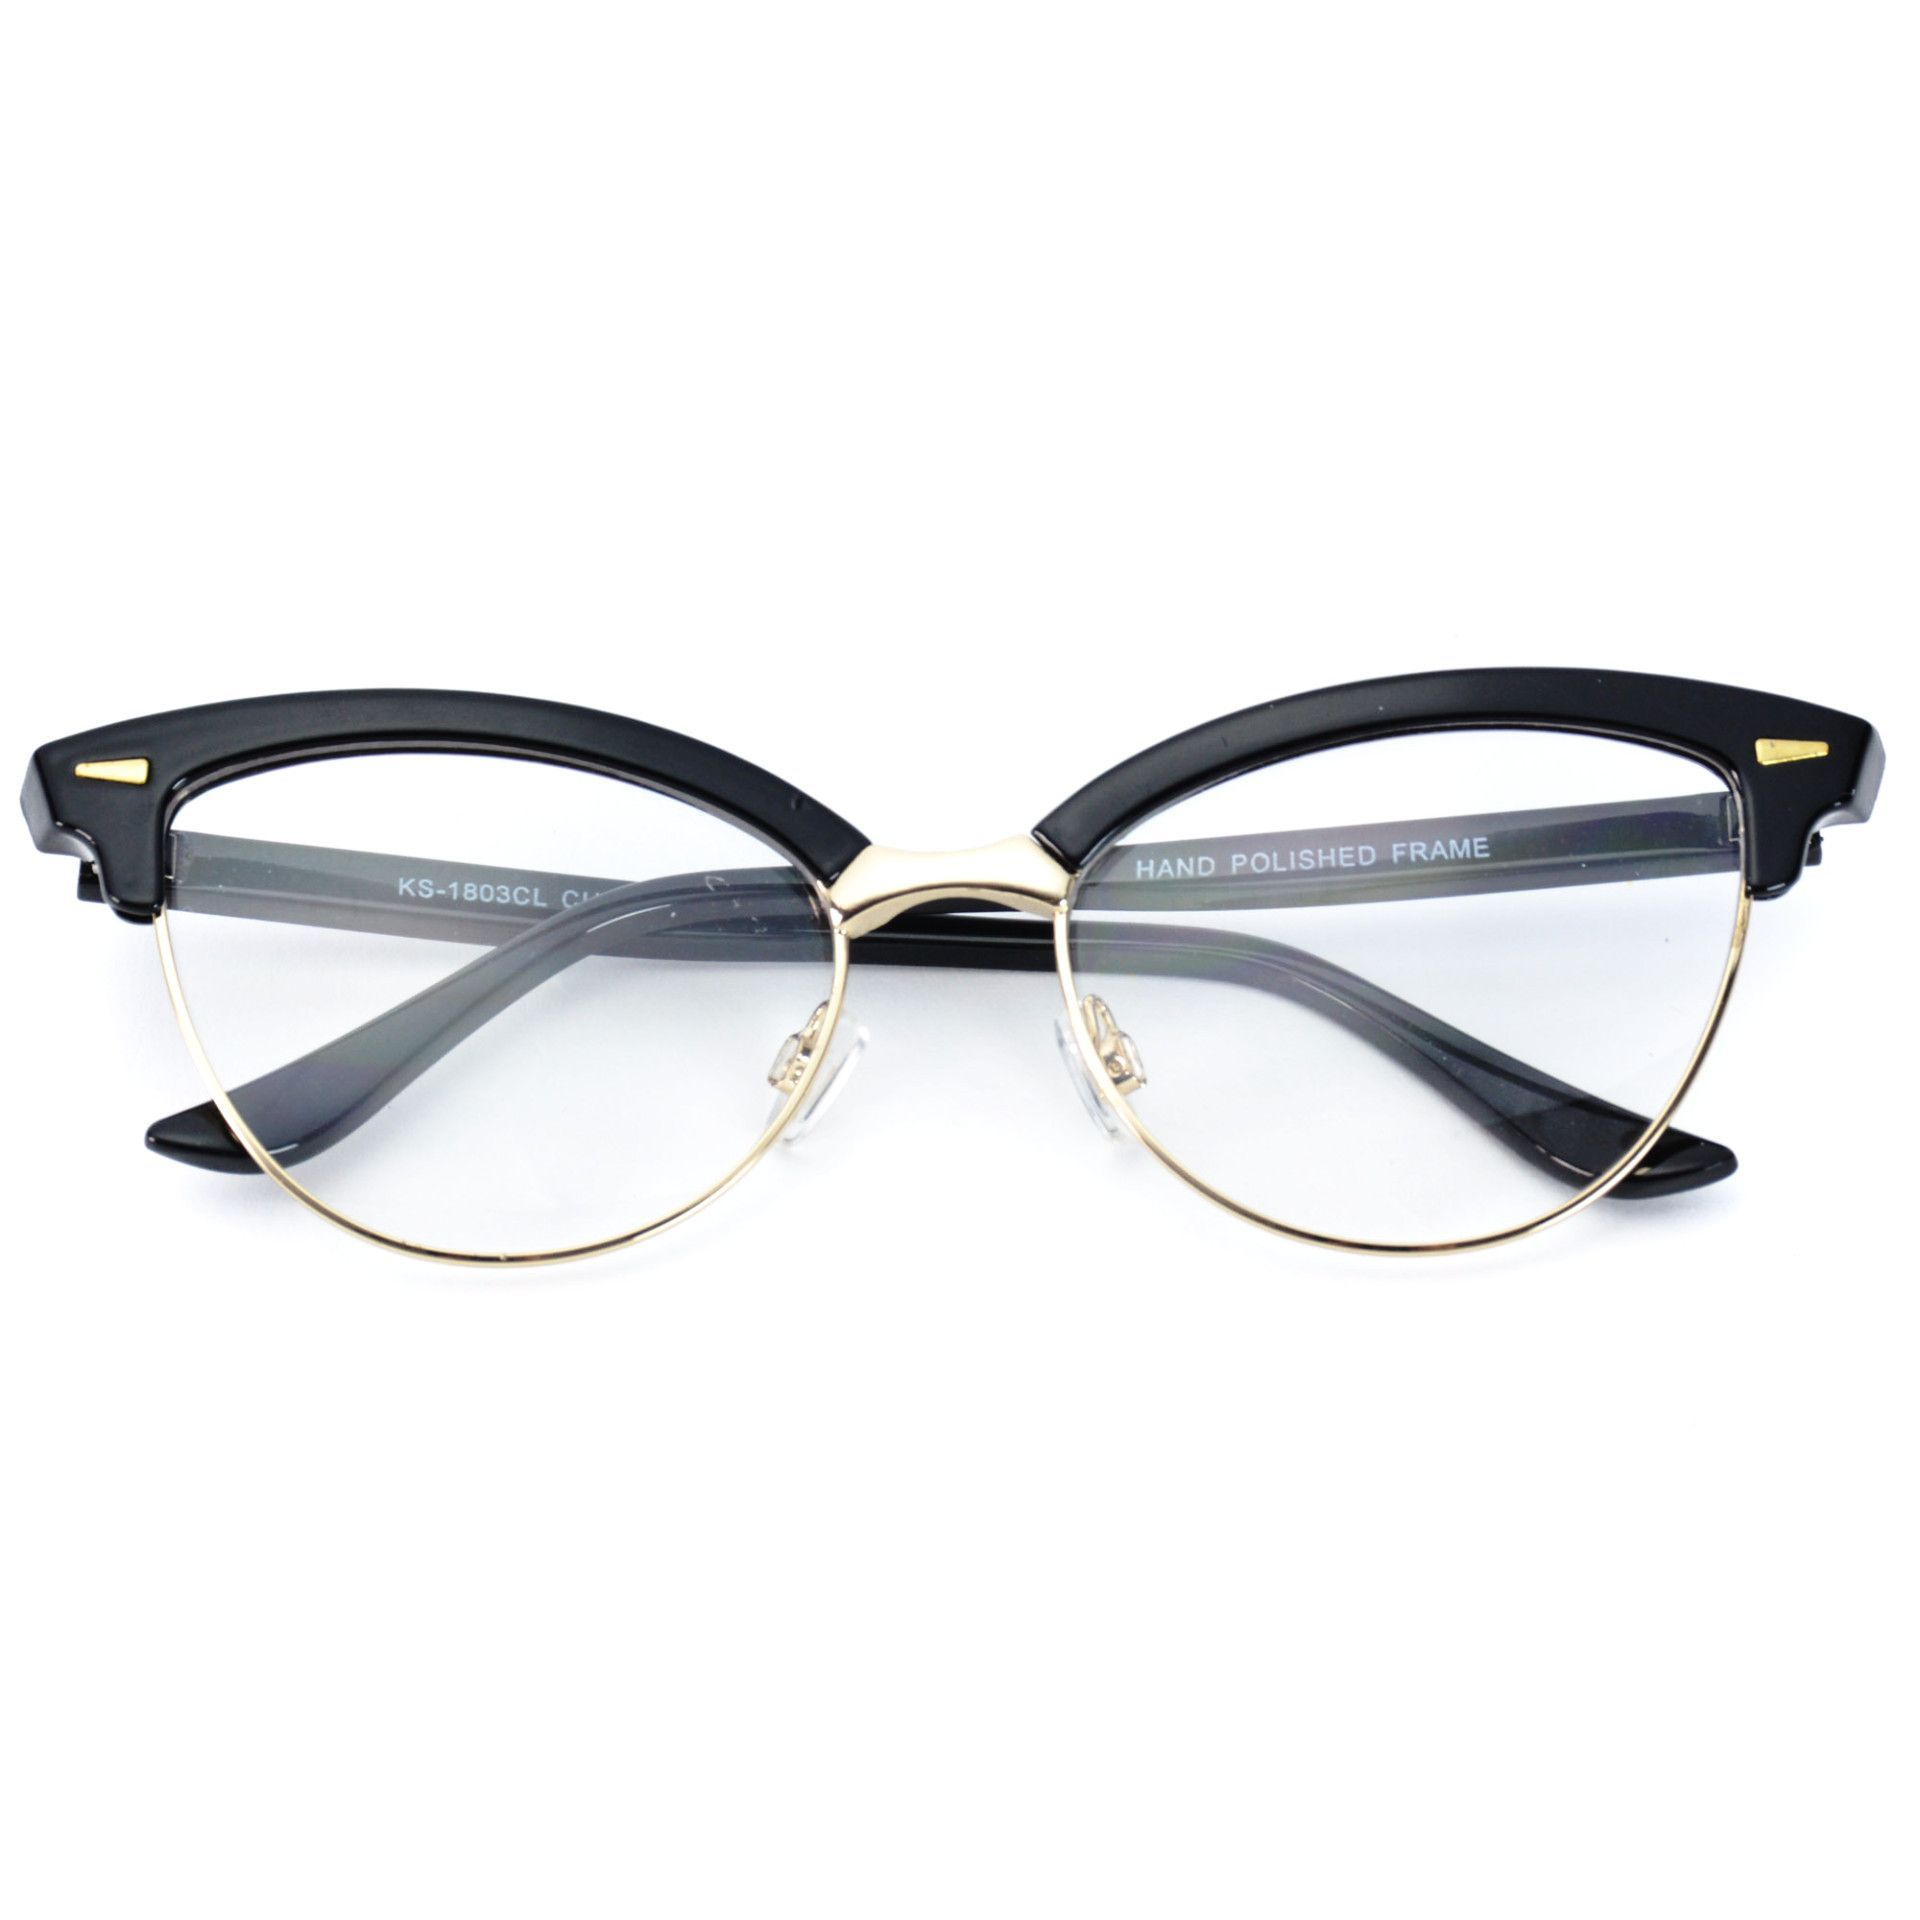 6e517cd7db791 Elodie Metal Semi Rimless Cat Eye Fashion Glasses